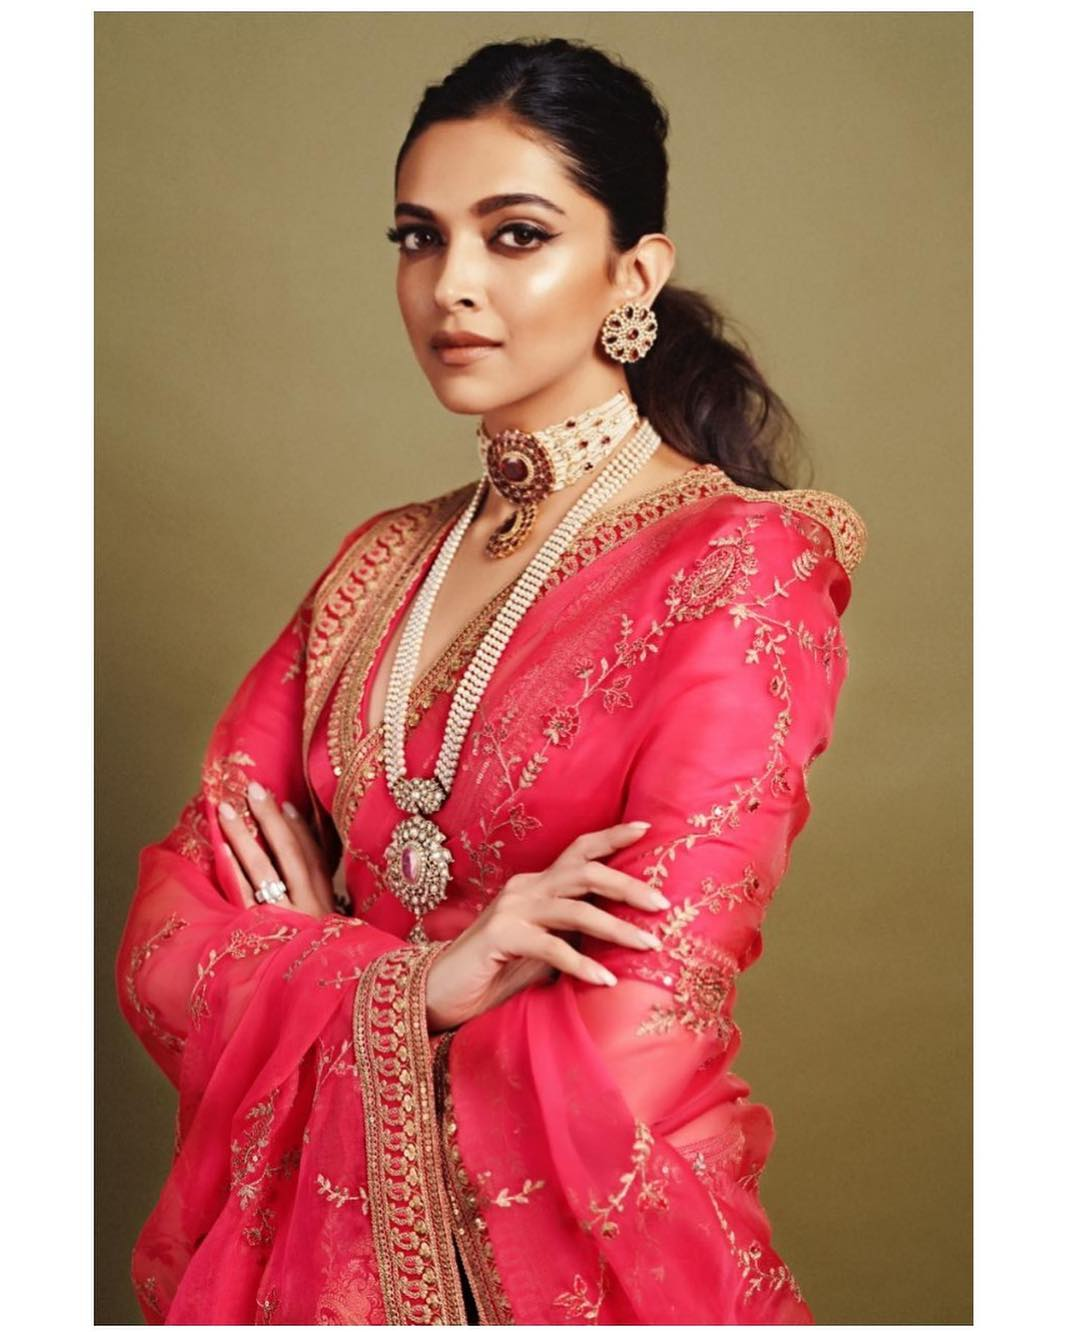 Deepika Padukone looking breathtakingly beautiful in Designer Pink and gold Saree || Planet Bollywood || Media Tribe || The-Uncovered